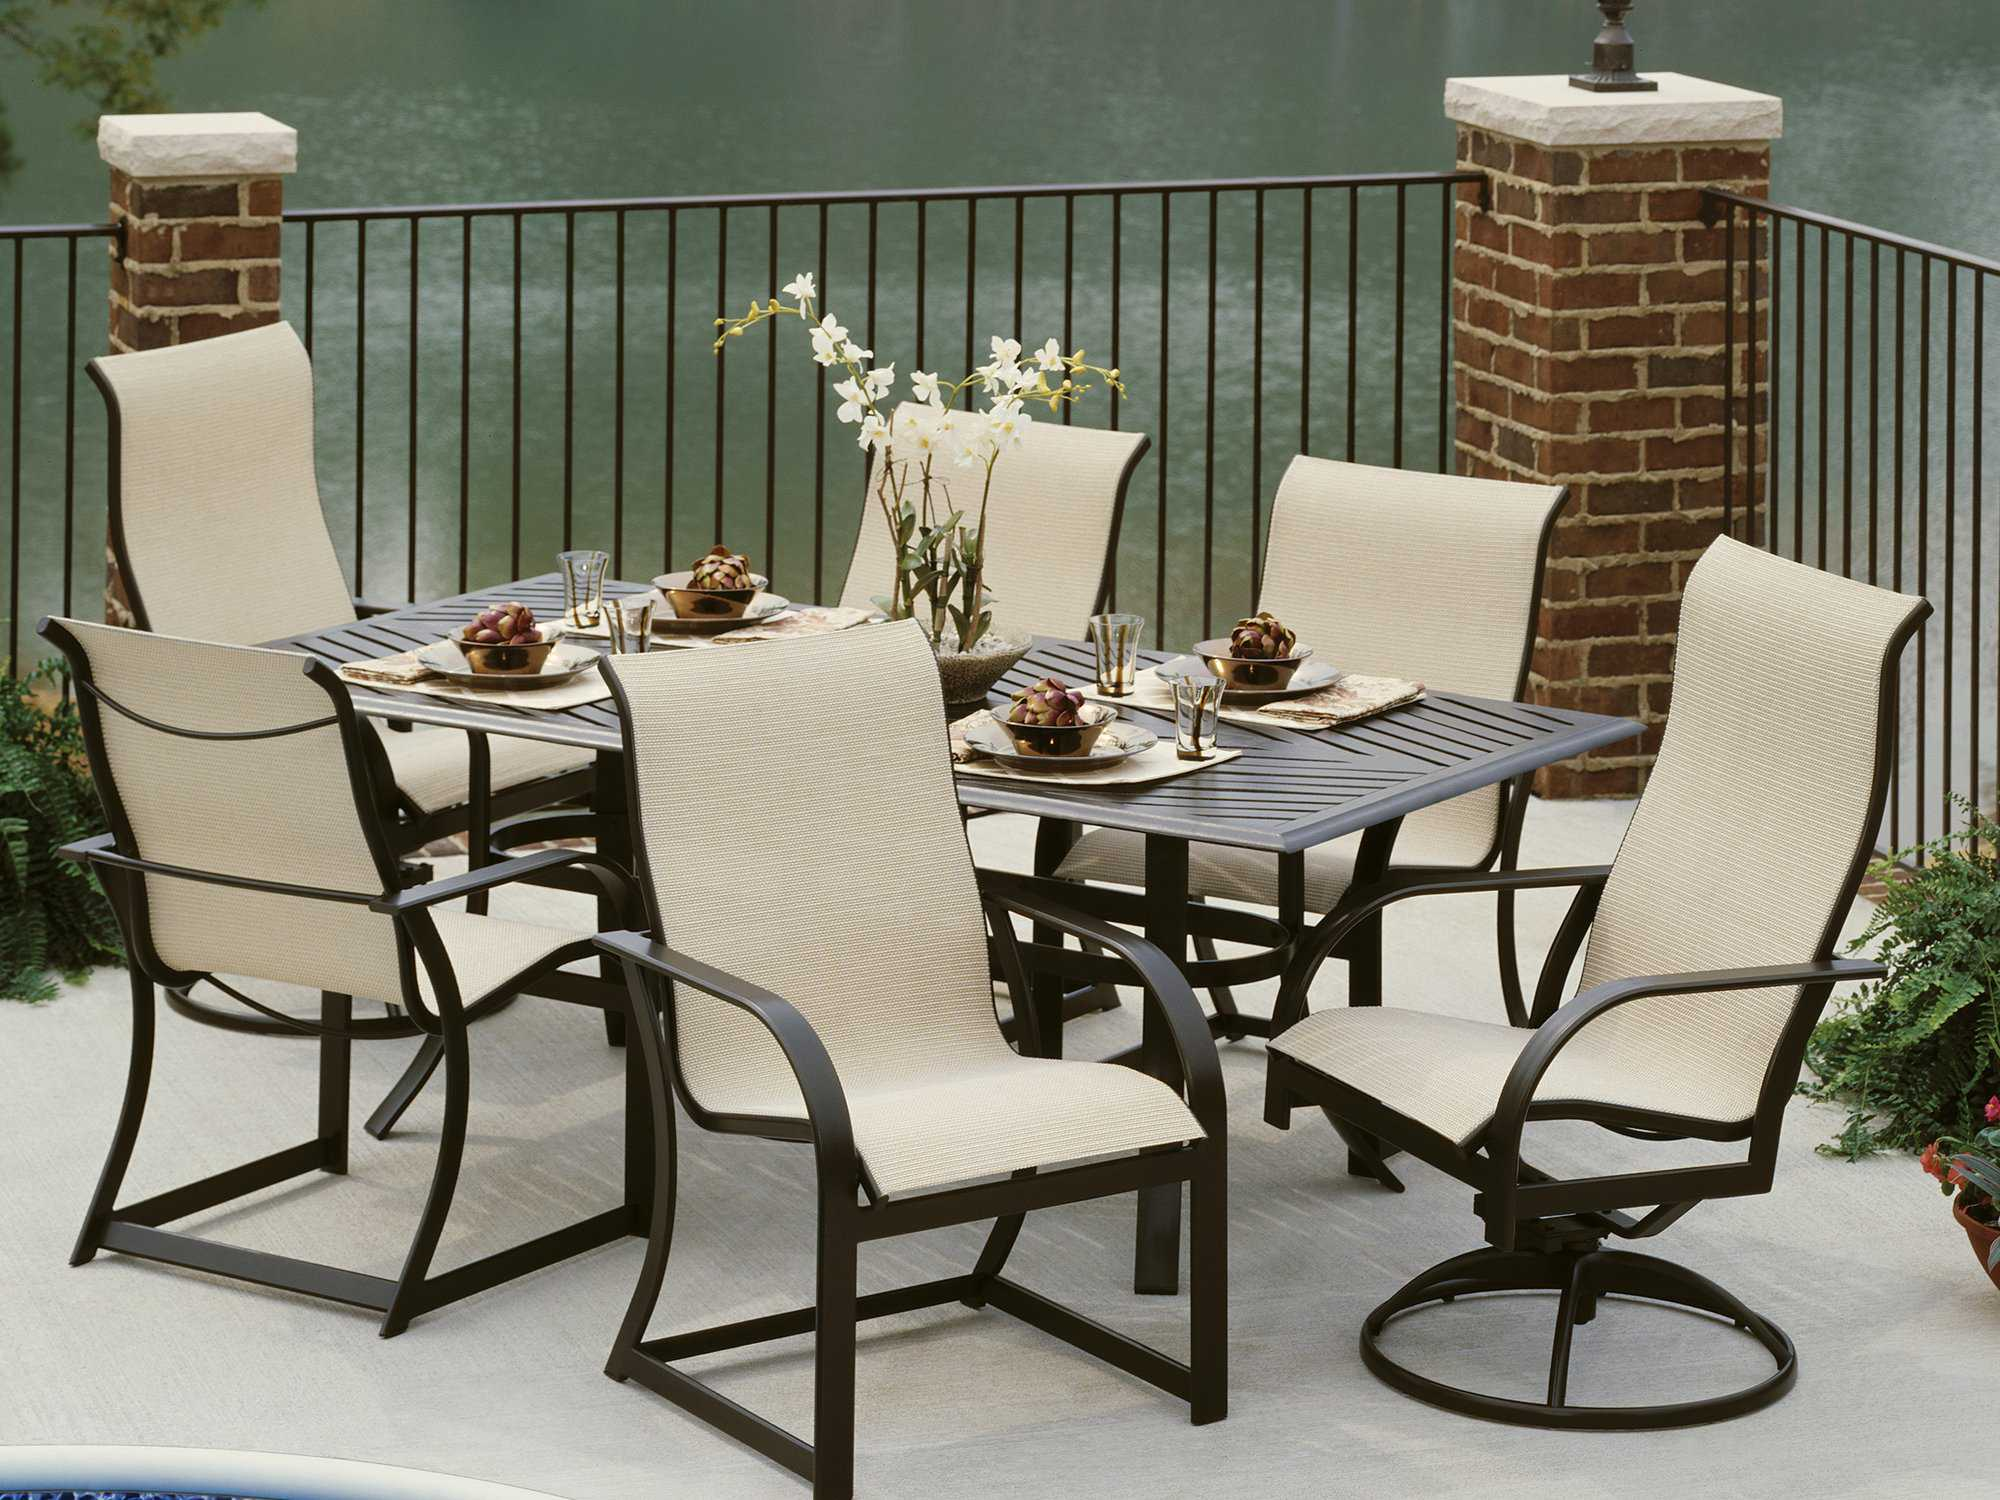 outdoor ideas table walmart set of benches sets inspiration dining patio design